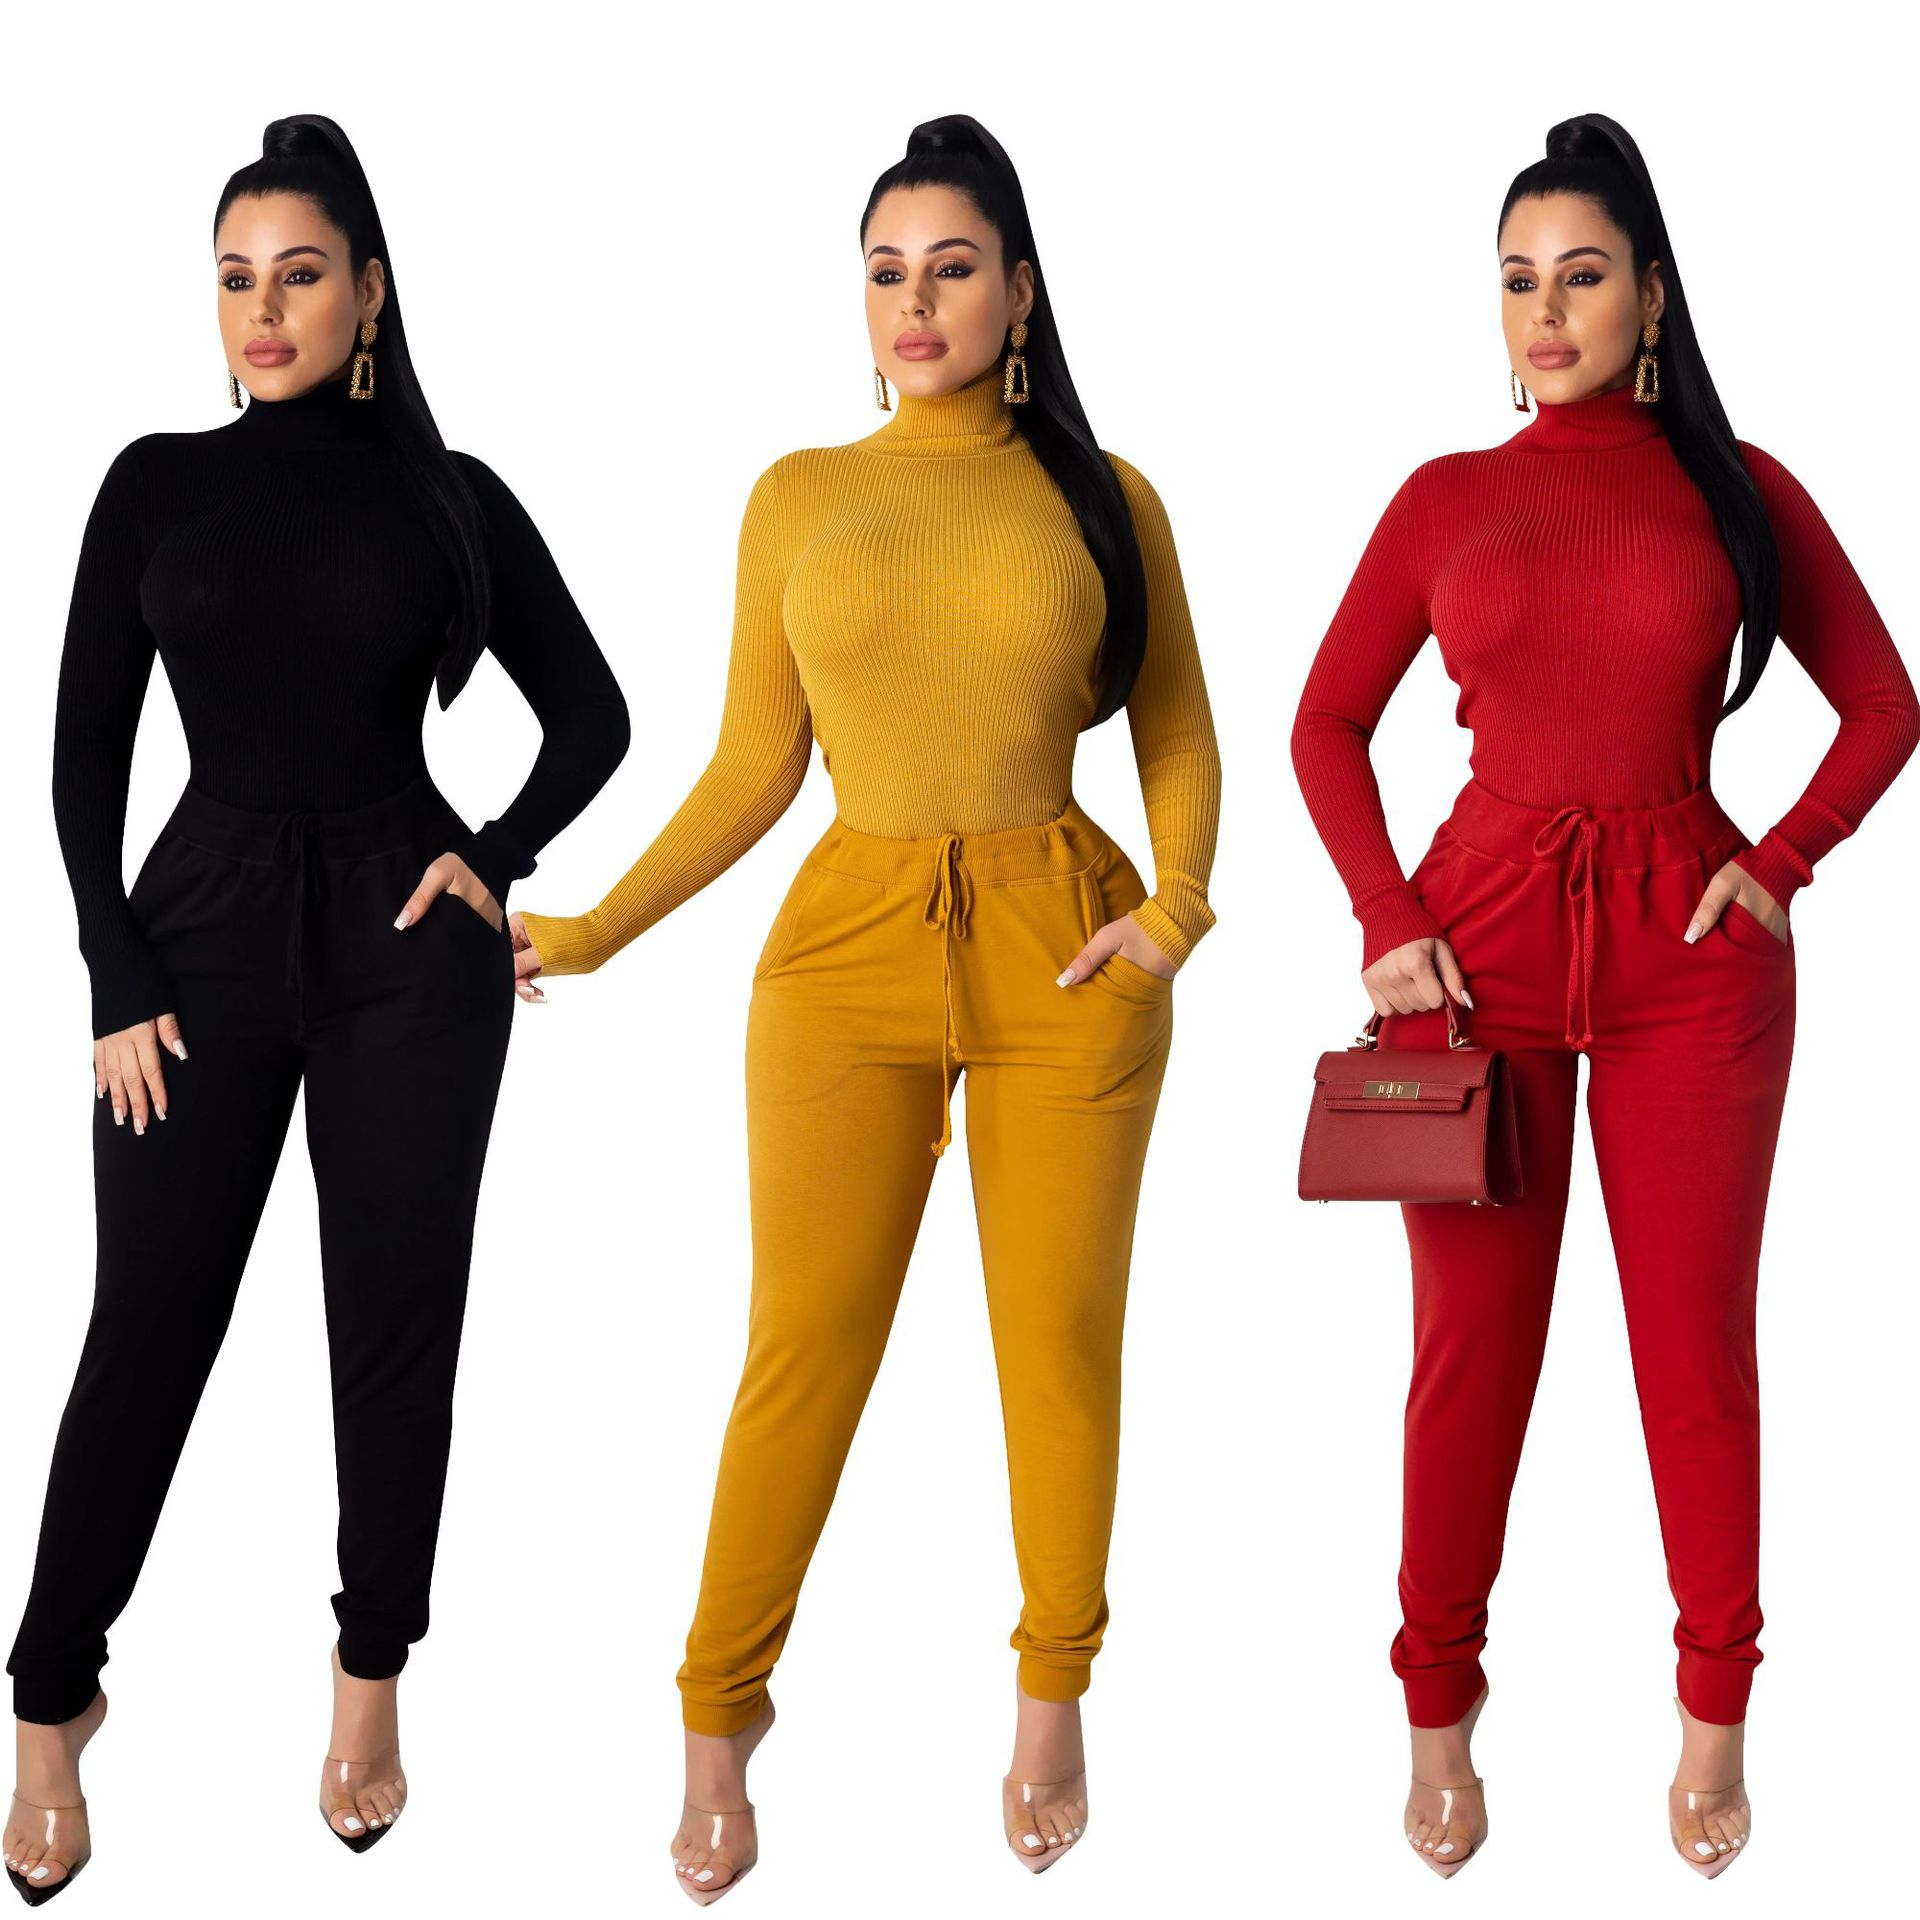 2019 New Explosion Style European And American Fashion Pit Striped Turtleneck Autumn And Winter Bottoming Set